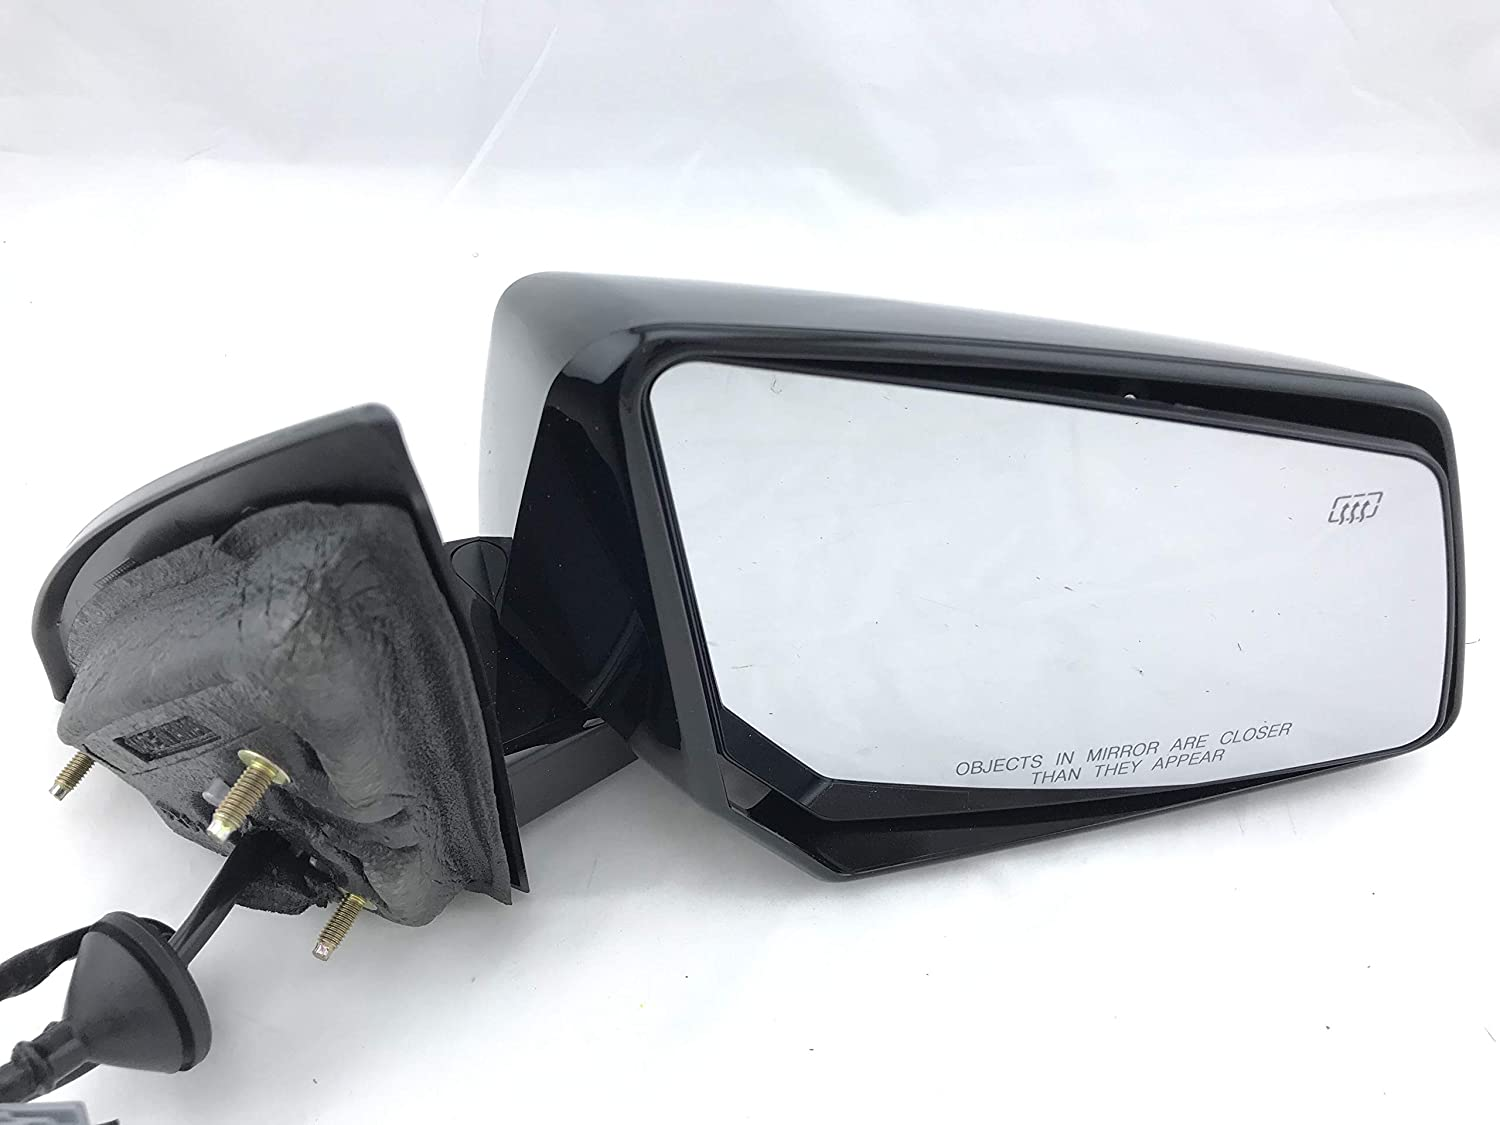 OE:25894454 Parts Link # GM1321363 Passenger Side Right Rear View Mirror Replacement for Saturn Outlook 07-08//G.M.C Acadia 07-08